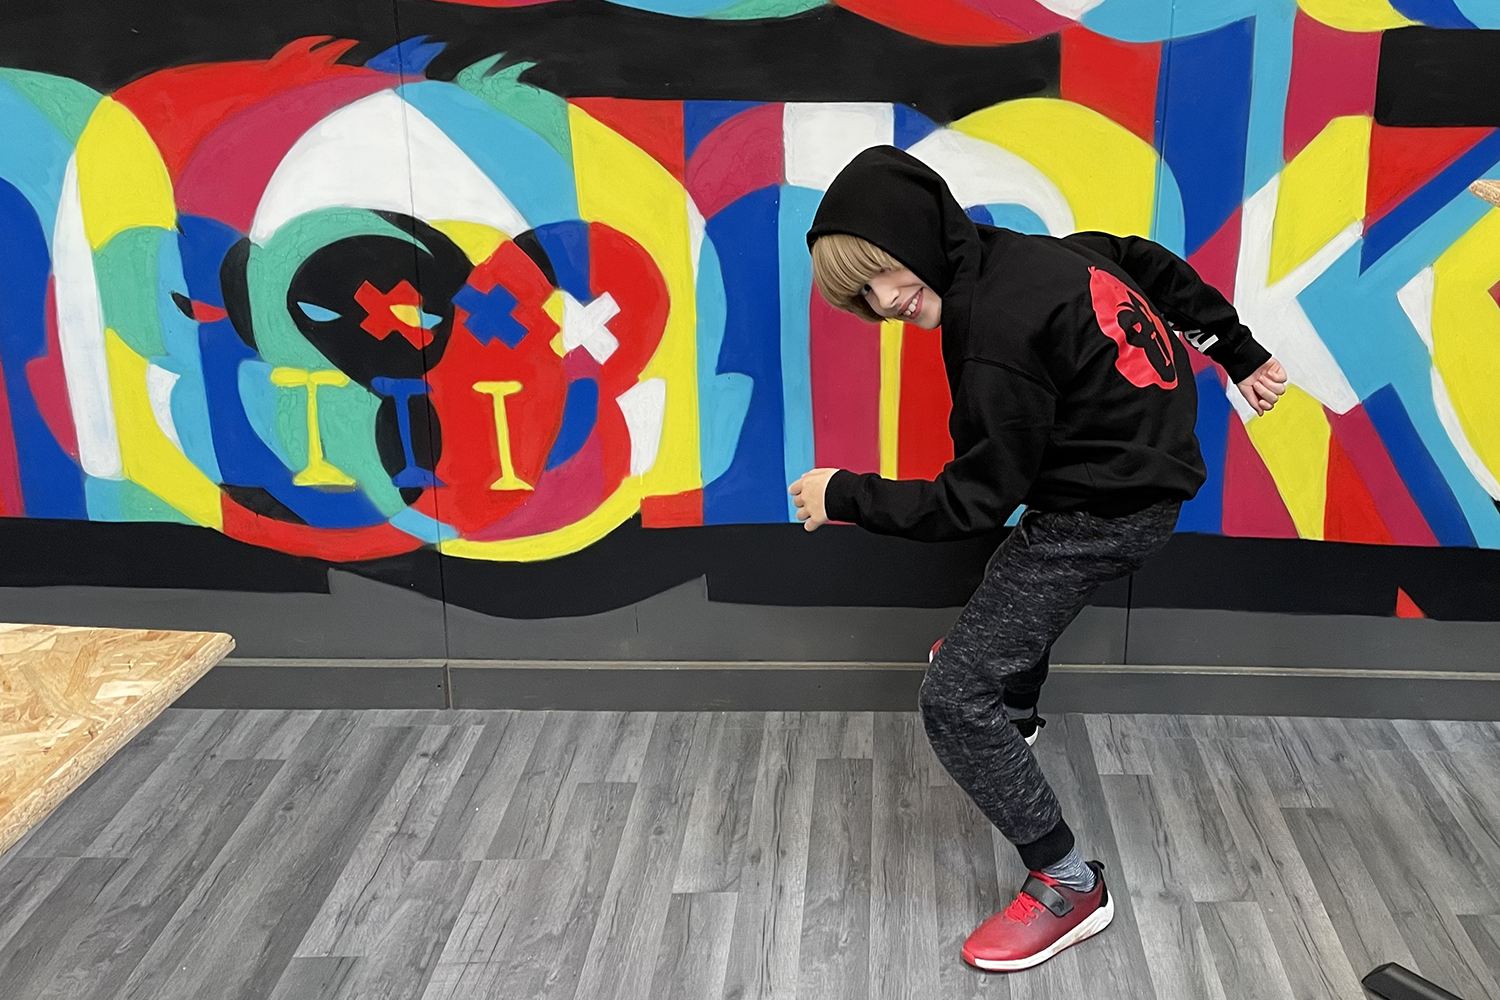 Toby doing a ninja pose in a black hoodie with the hood up in front of colourful monkey on the wall behind him